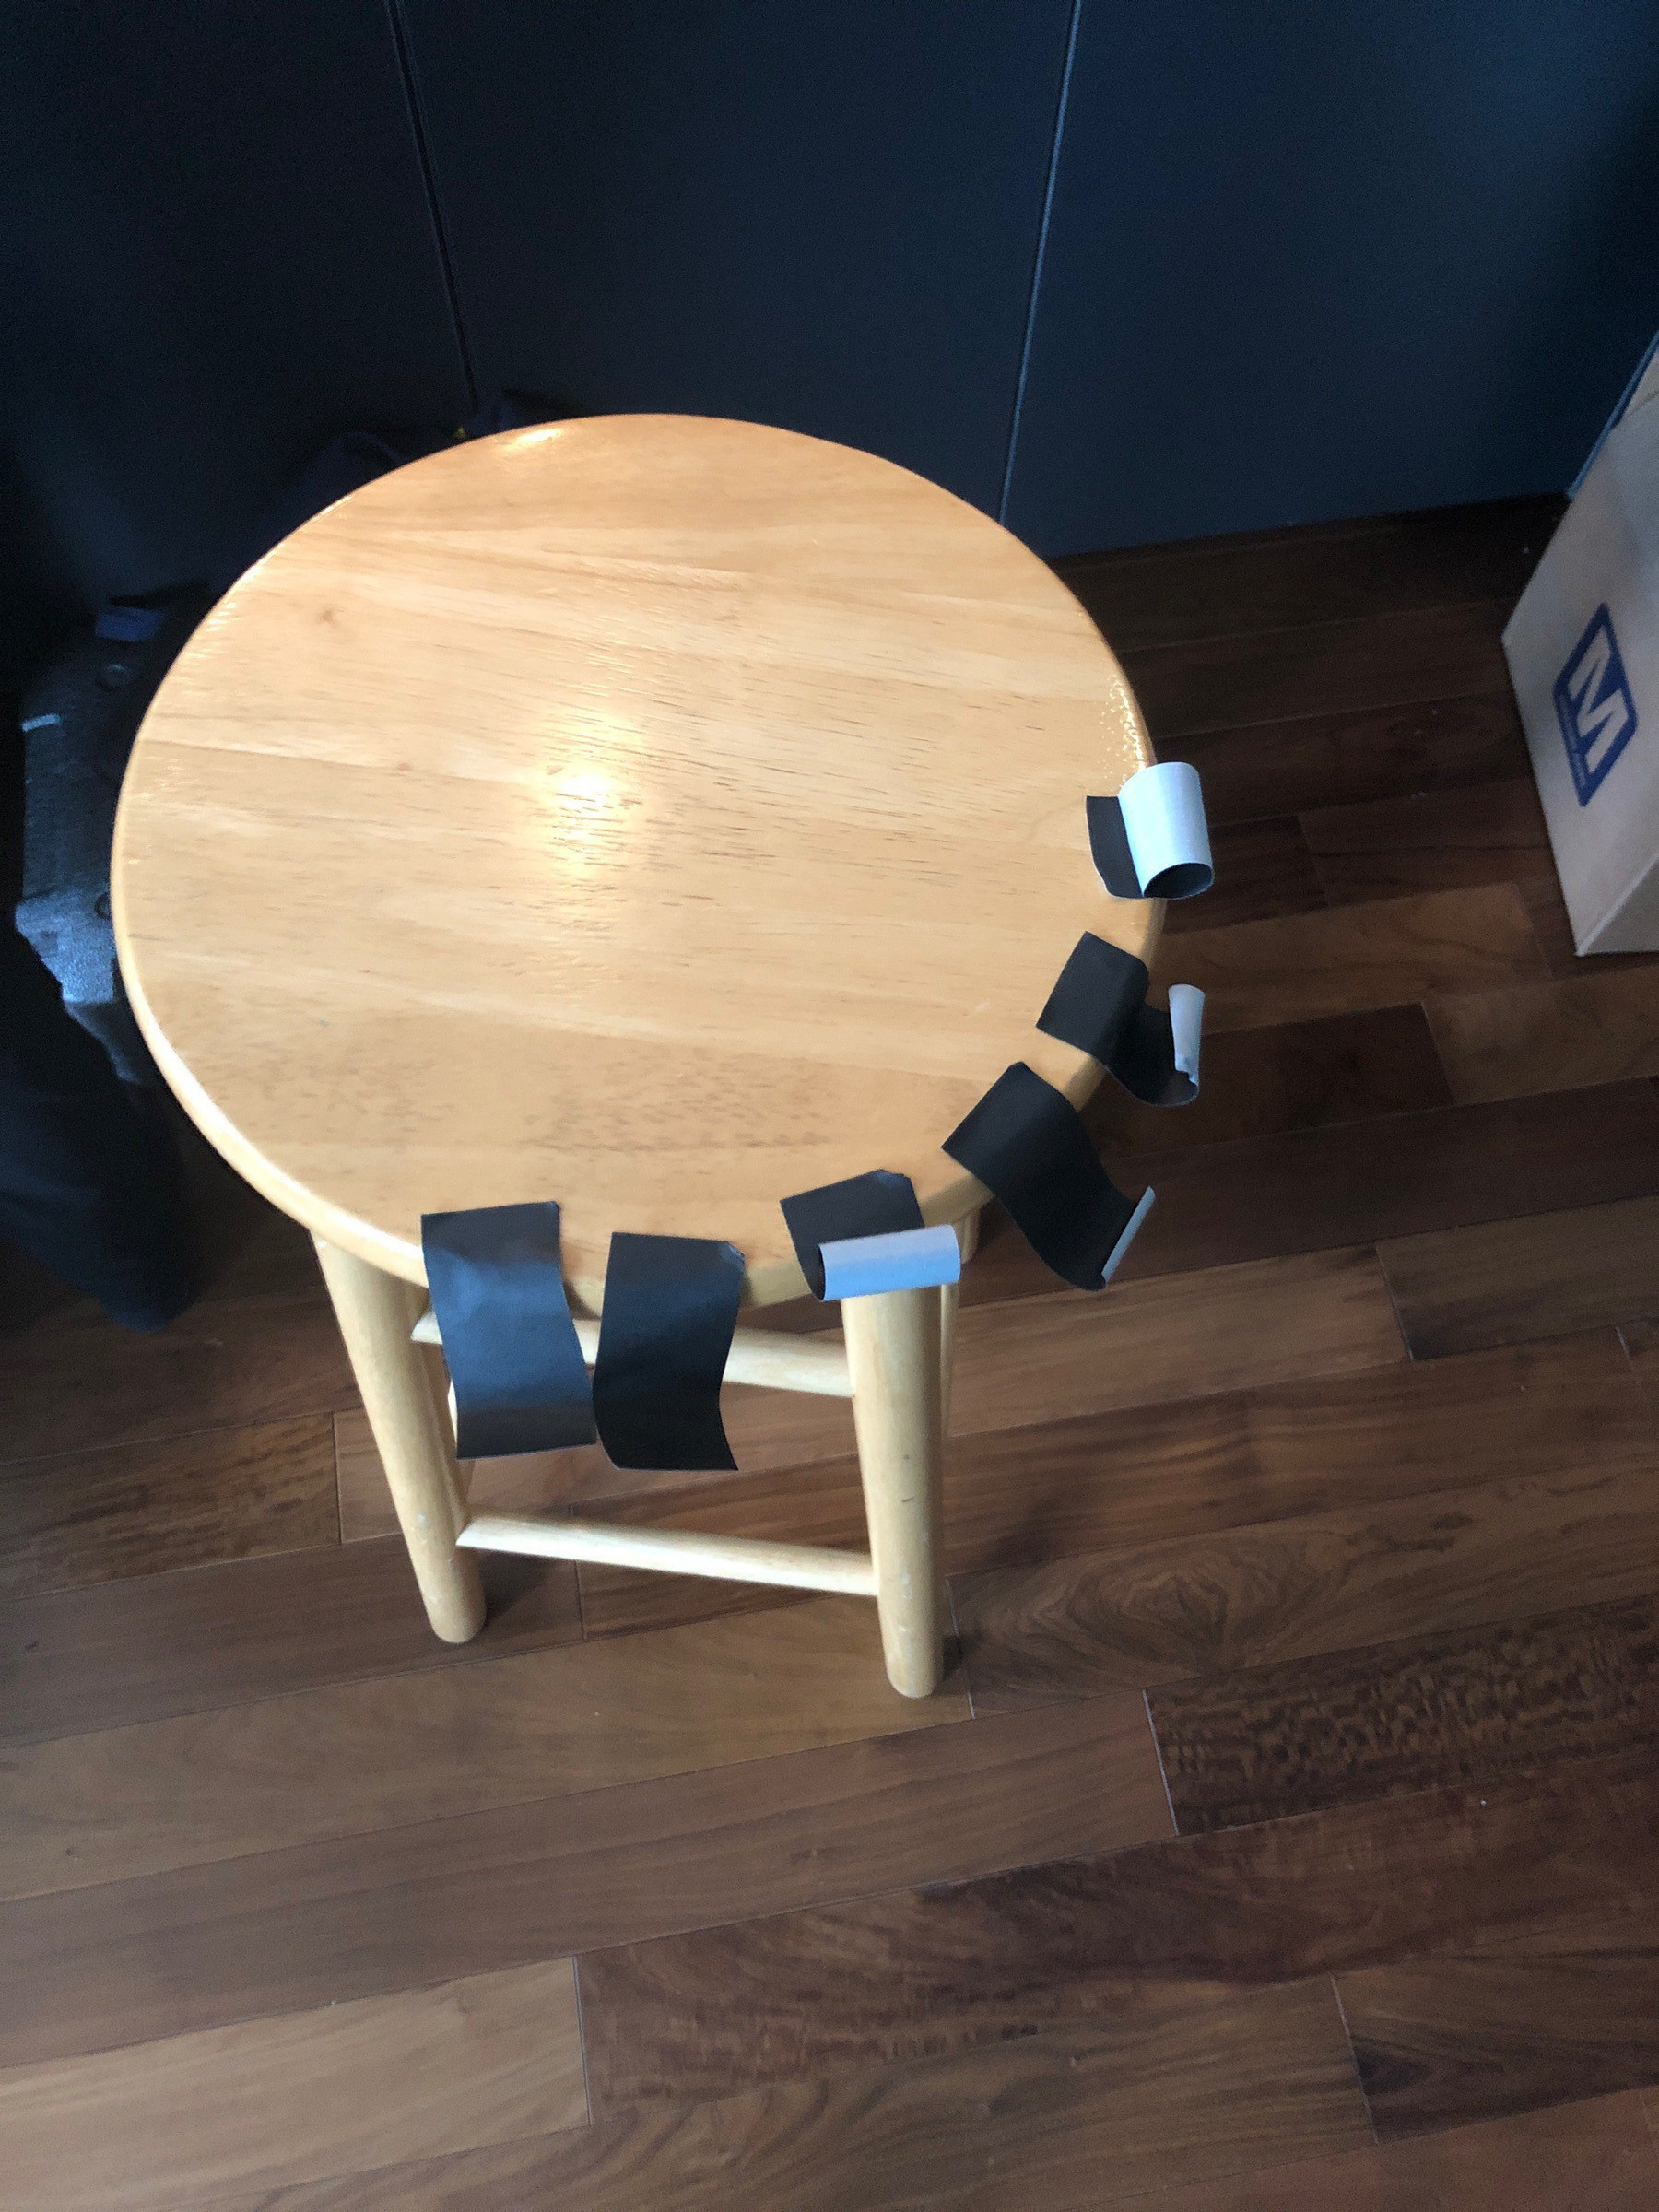 Blonde wooden stool with many small strips of black gaffers tape.